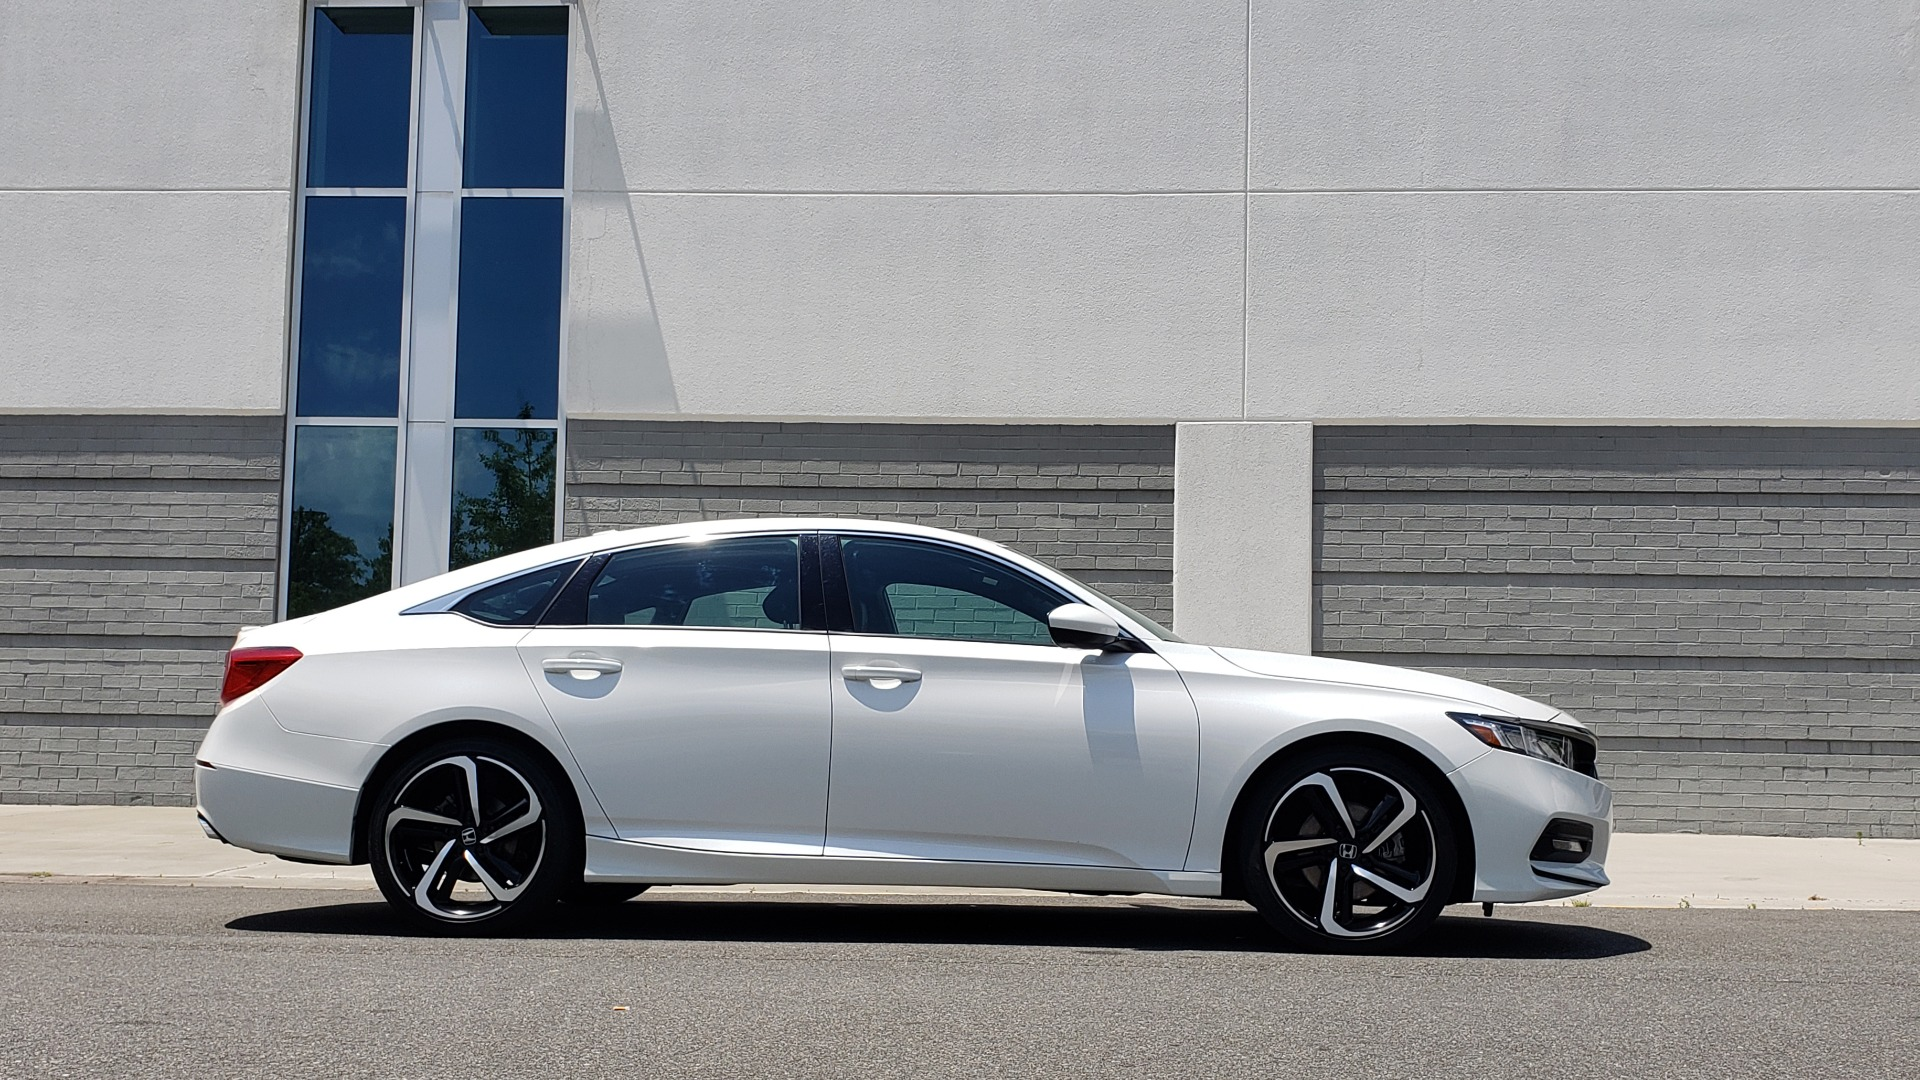 Used 2018 Honda ACCORD SEDAN SPORT 1.5T / CVT TRANS / FWD / 19IN WHEELS for sale $20,995 at Formula Imports in Charlotte NC 28227 10